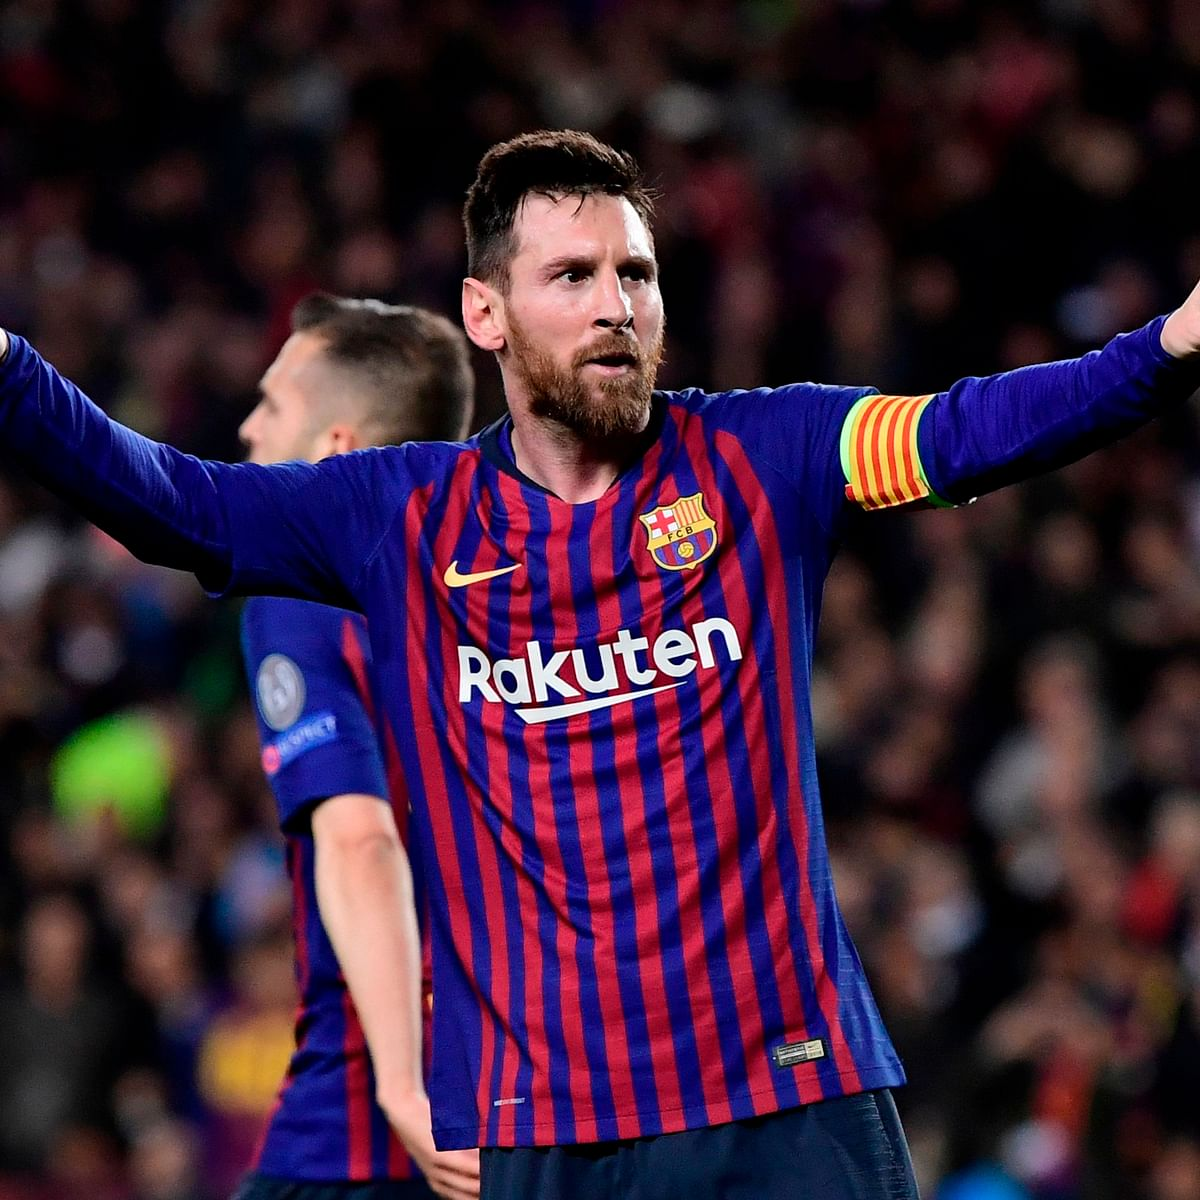 'He's a magician': Twitter reacts to Lionel Messi's solo goal against Napoli in Champions League round-of-16 fixture